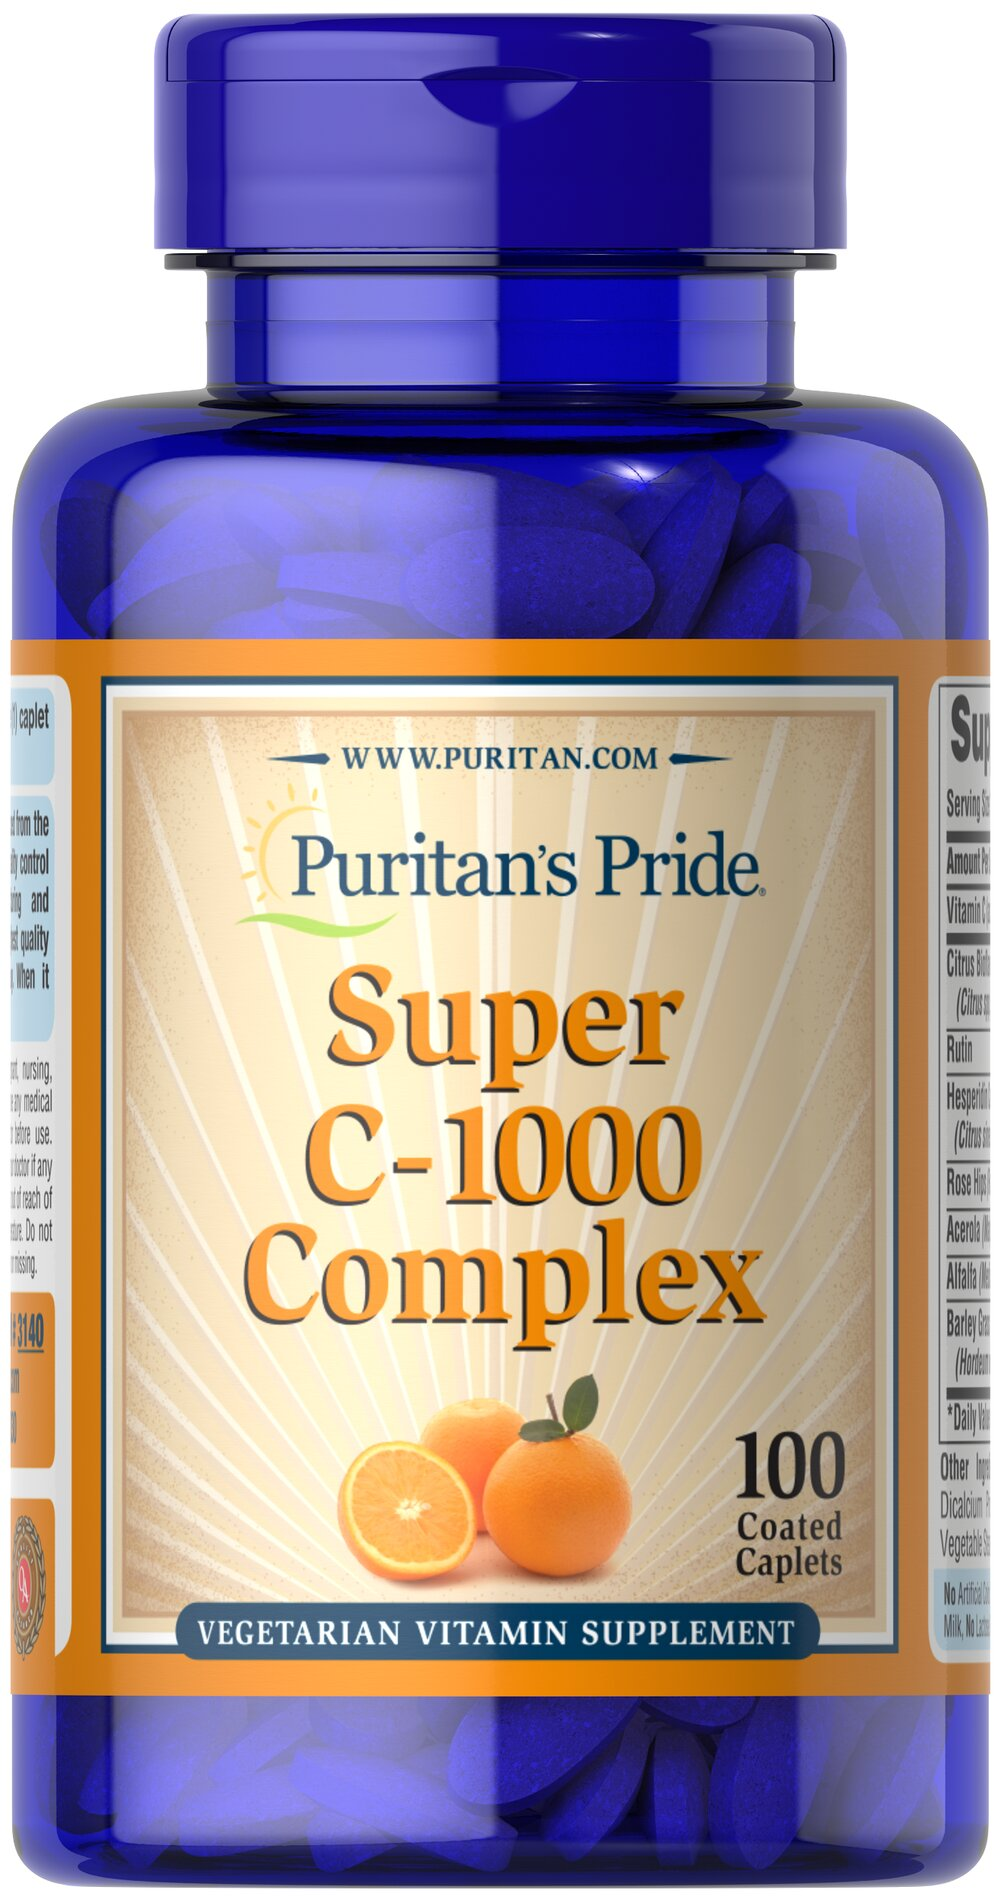 C-1000 Complex™ <p>Vitamin C  is essential to many functions in the body and is one of the leading vitamins for immune support.** Our C-complex includes potent Vitamin C as Ascorbic Acid. We also include Citrus Bioflavonoids, Rose Hips, Rutin, and Acerola.**</p><p>Offers superior antioxidant support.**</p><p>Supports healthy immune function and promotes well-being.**</p> 100 Coated Caplets 1000 mg $14.99